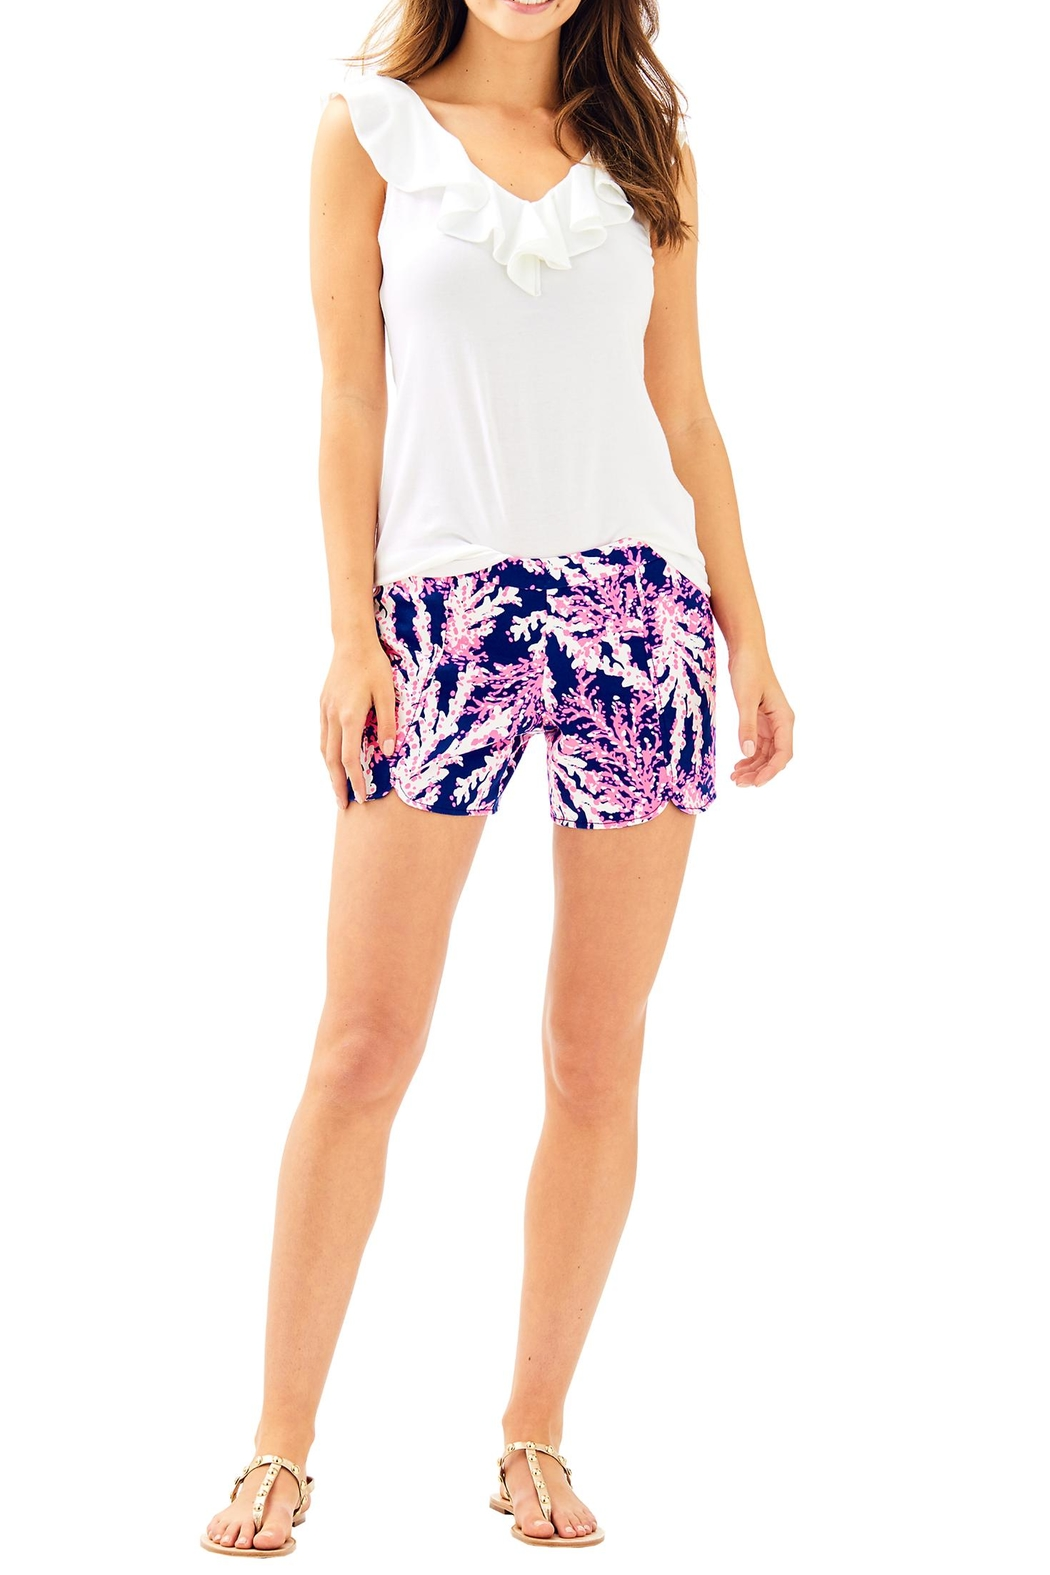 Lilly Pulitzer Hazelle Stretch Short - Back Cropped Image